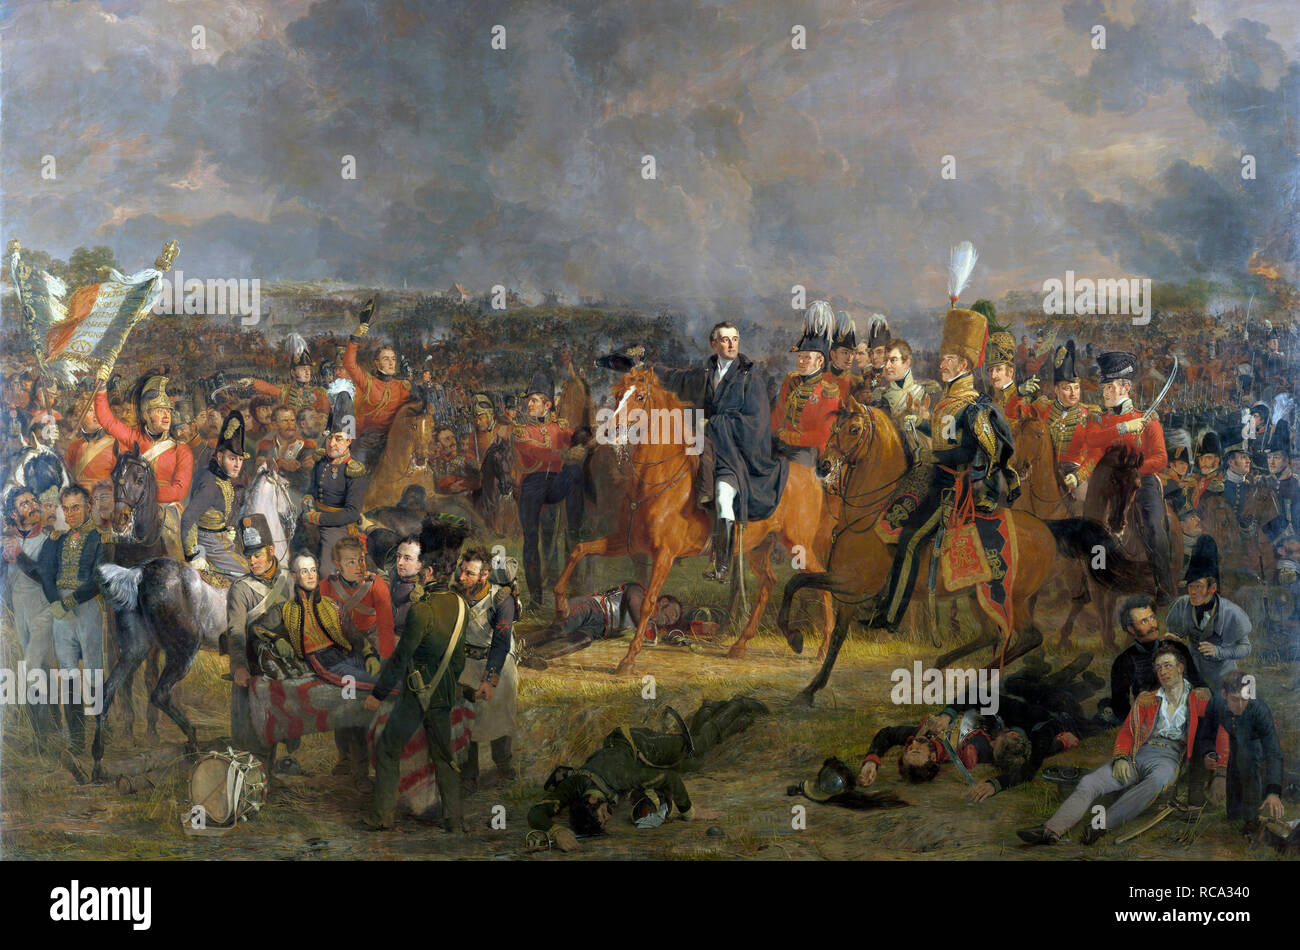 La battaglia di Waterloo, dopo un dipinto di Jan Willem Pieneman sul display al Rijksmuseum, Amsterdam, Paesi Bassi. Wellington, centro riceve la notizia che i suoi alleati di Prussia sono nelle vicinanze. A sinistra il ferito William, principe di Orange è portato via su una barella. La lotta infuria in background. Immagini Stock